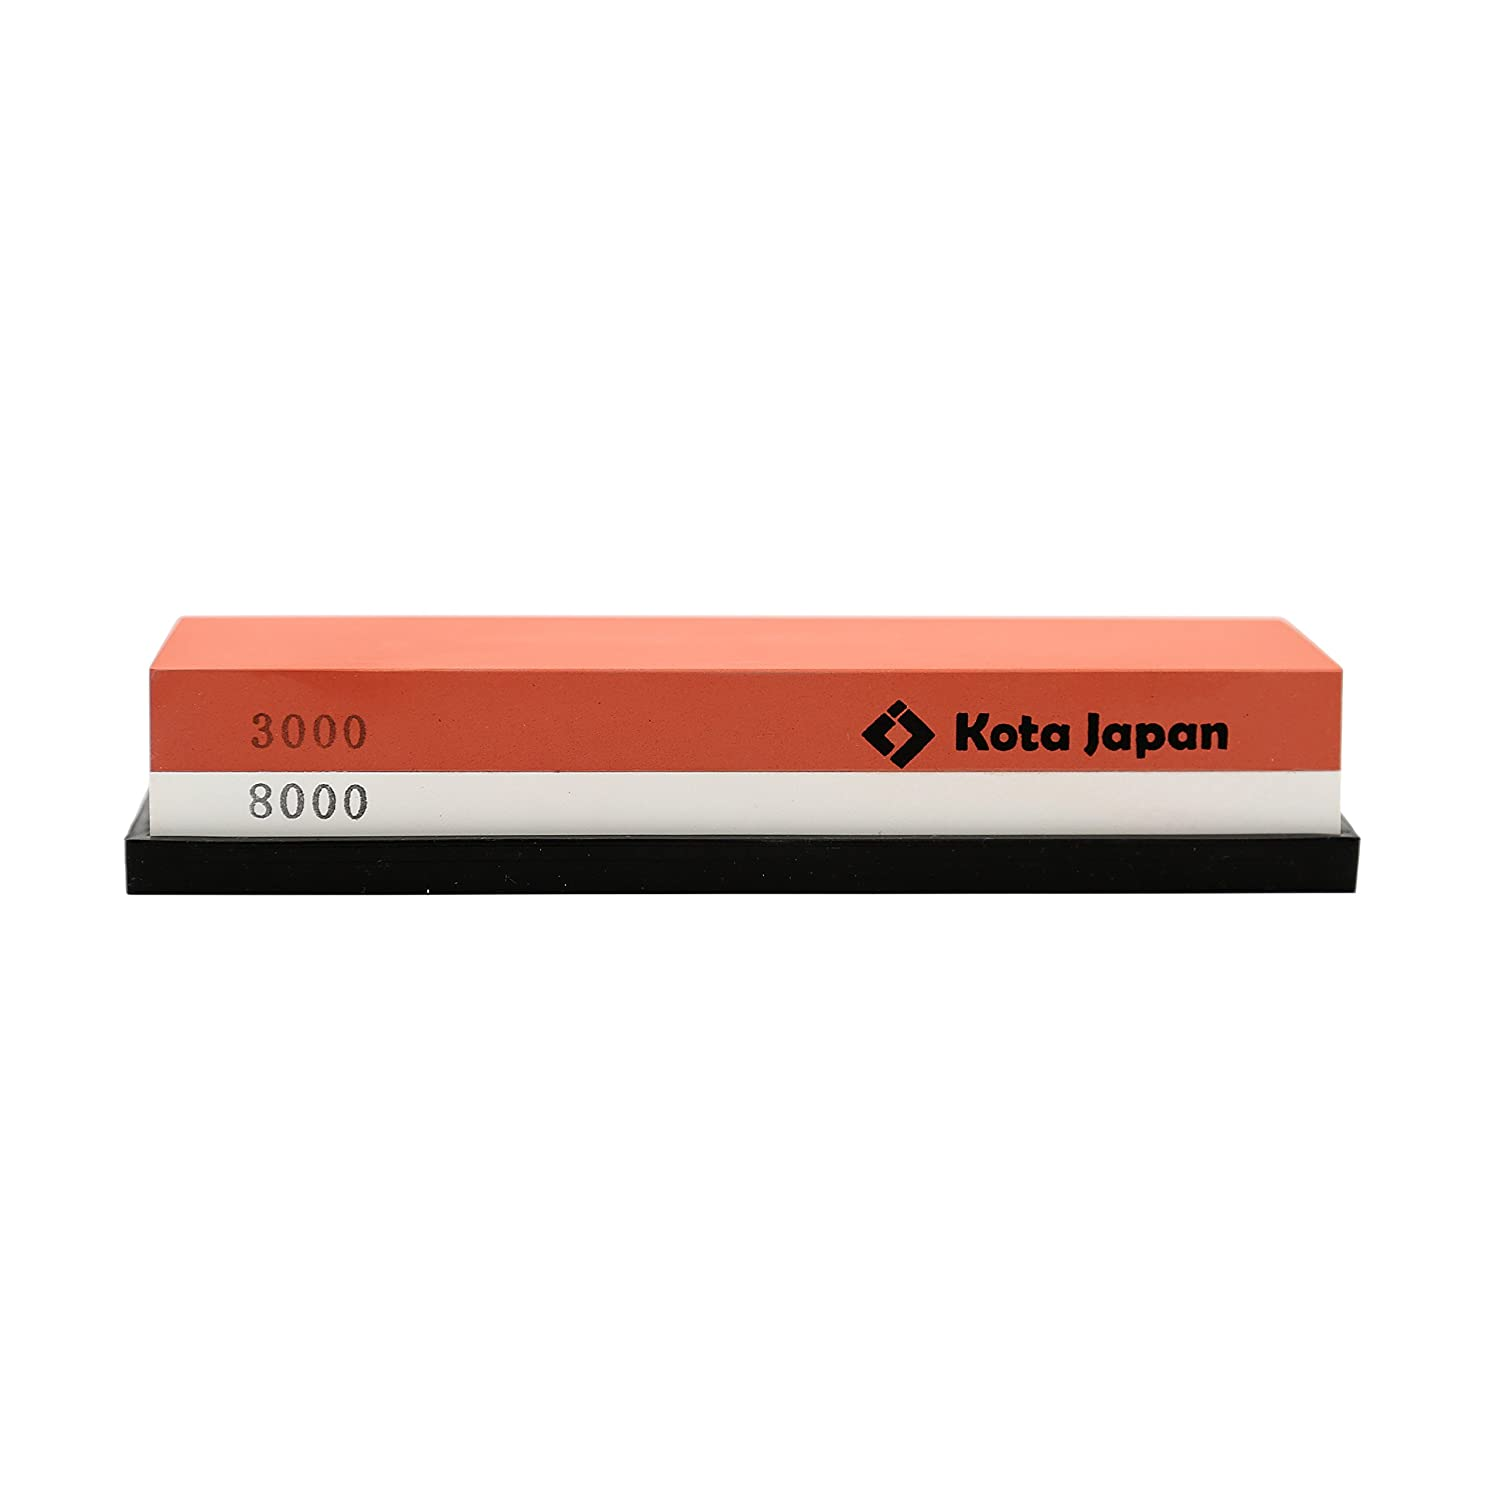 Amazon.com: Kota Japan Combination 3000-8000 - Afilador de ...